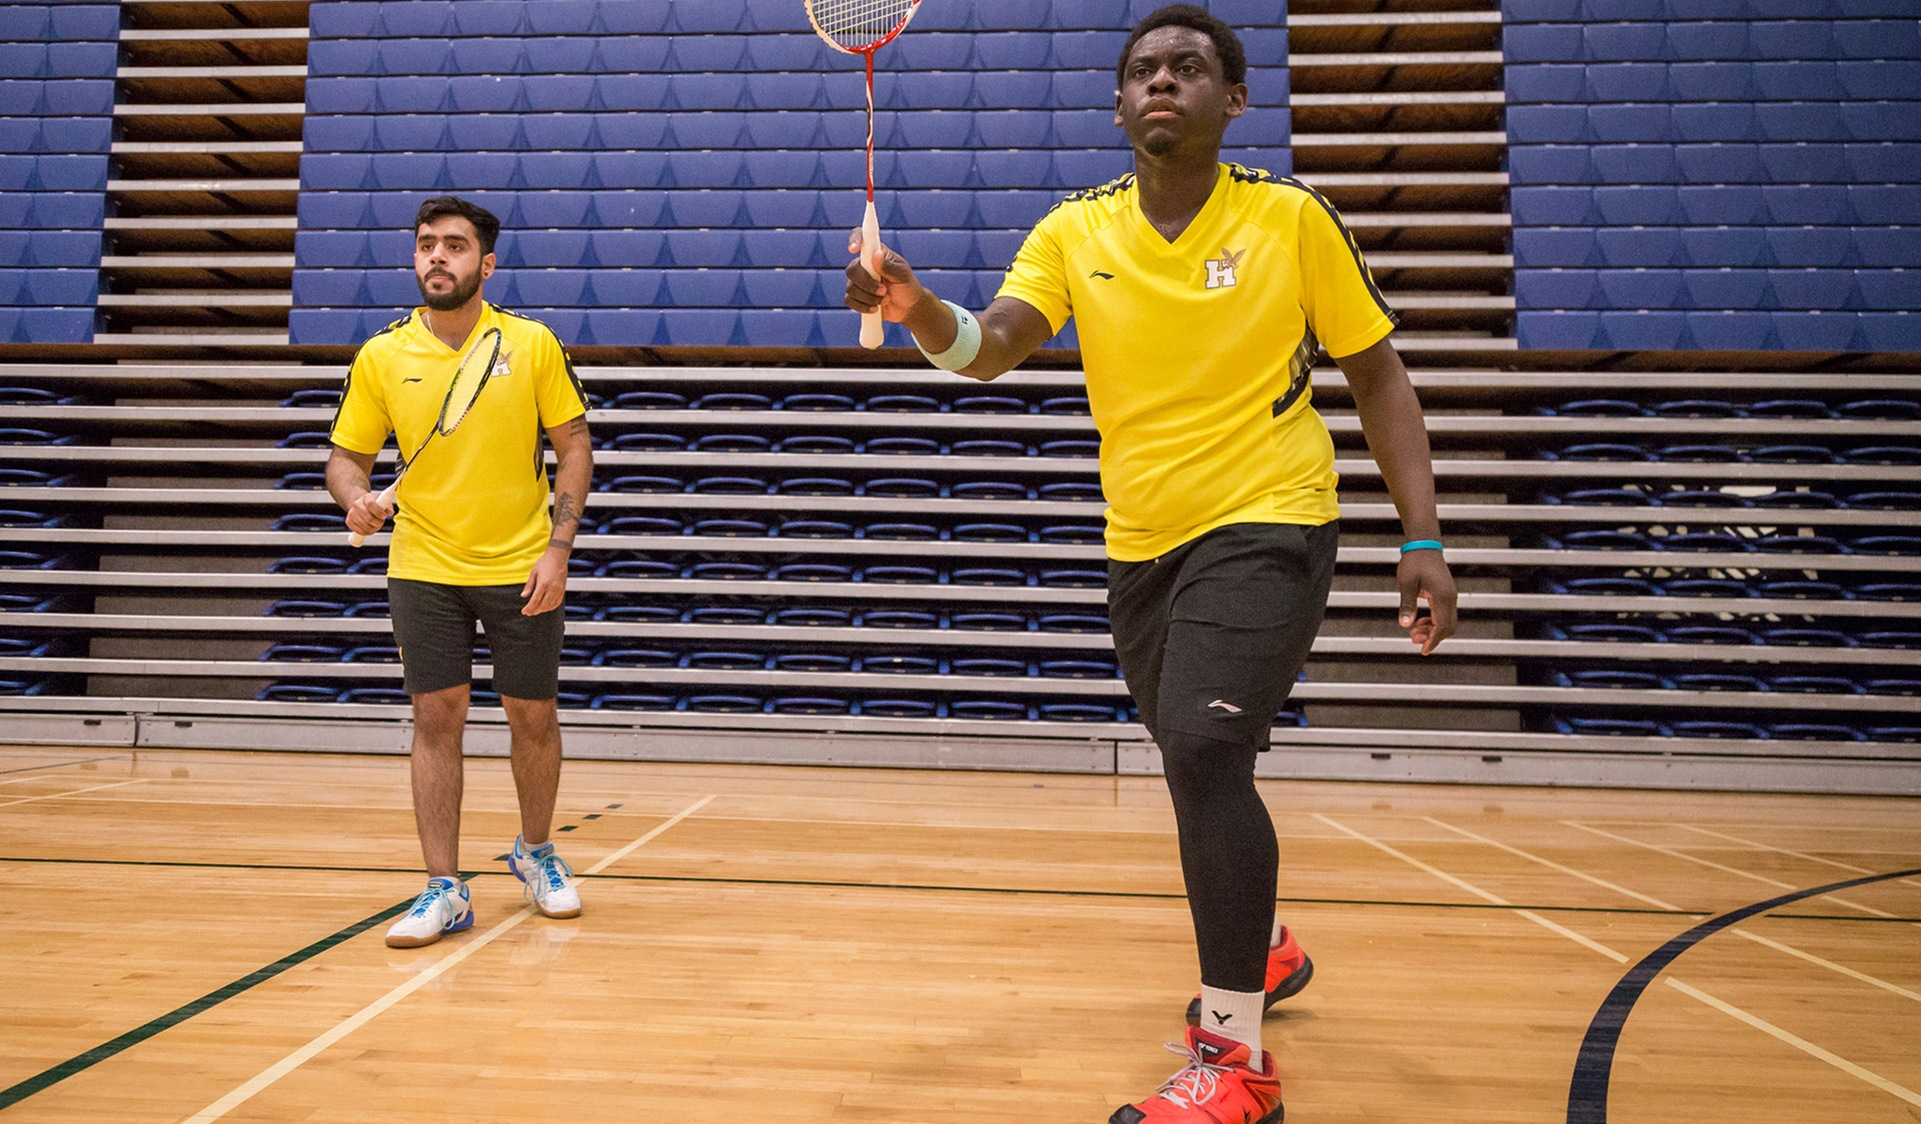 BADMINTON TEAMS PUT THEMSELVES IN POSITION TO ADVANCE TO MEDAL GAMES ON SATURDAY